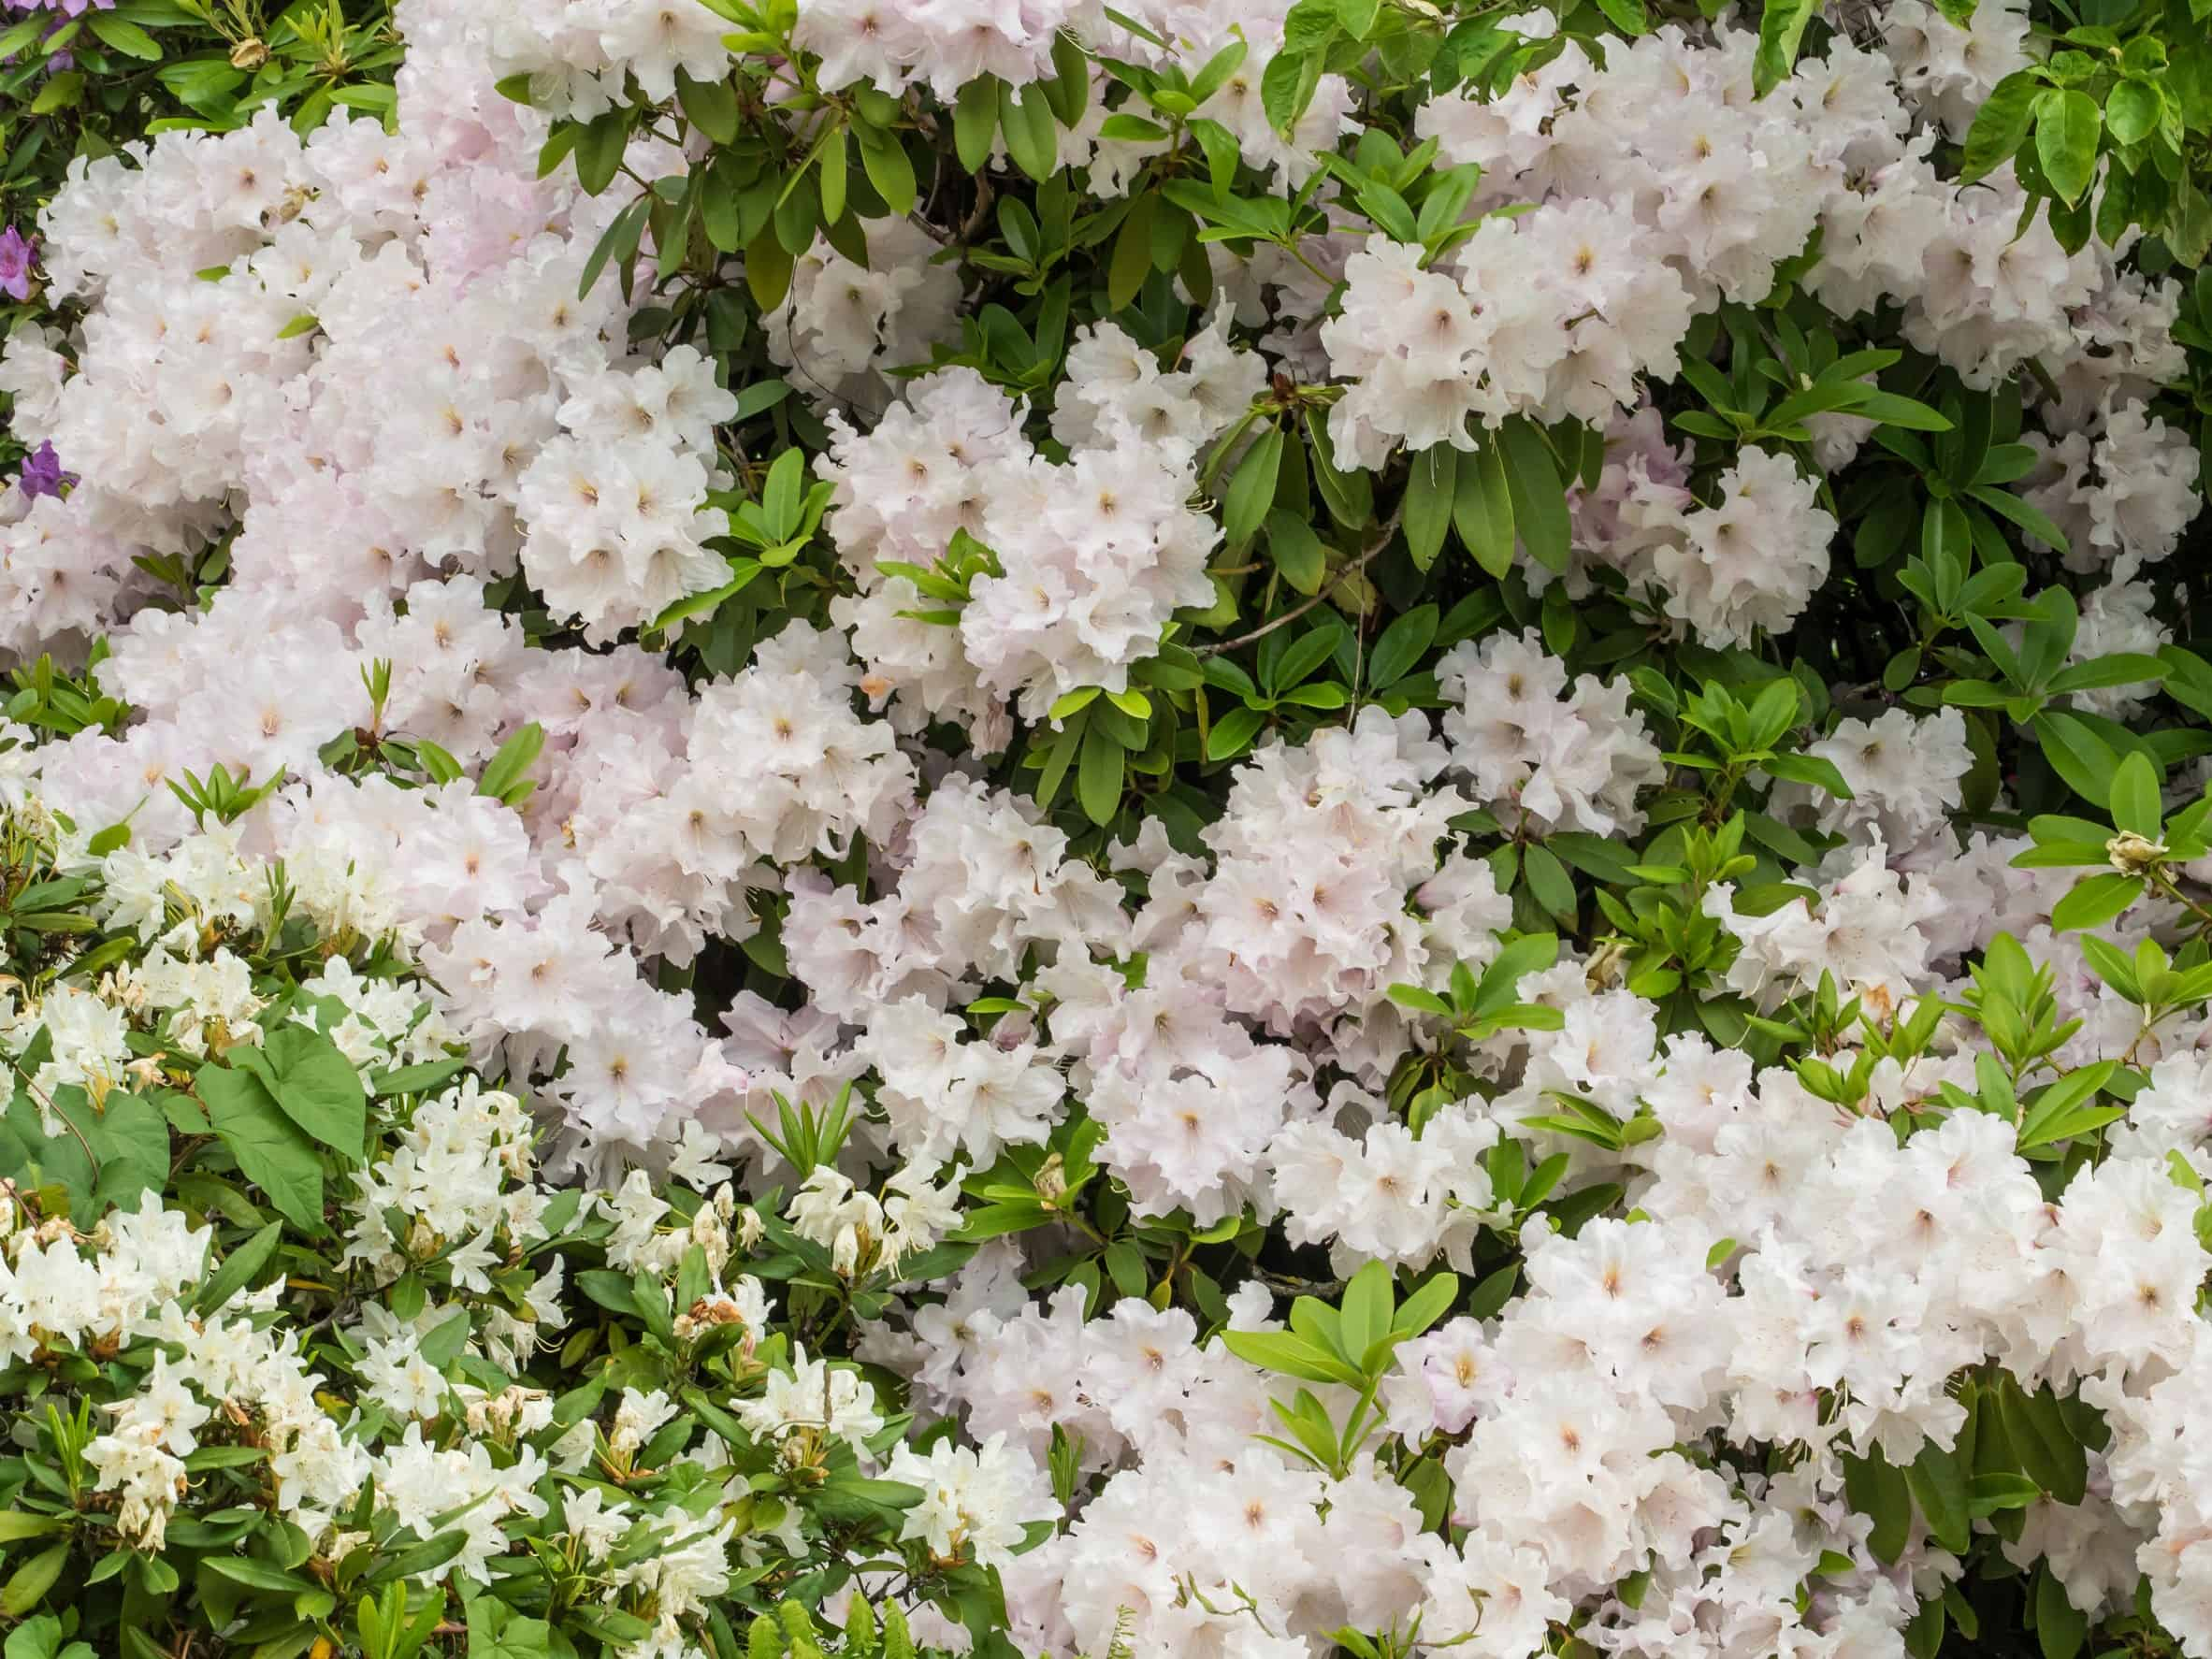 The flowers of the sweet azalea are toxic if consumed.